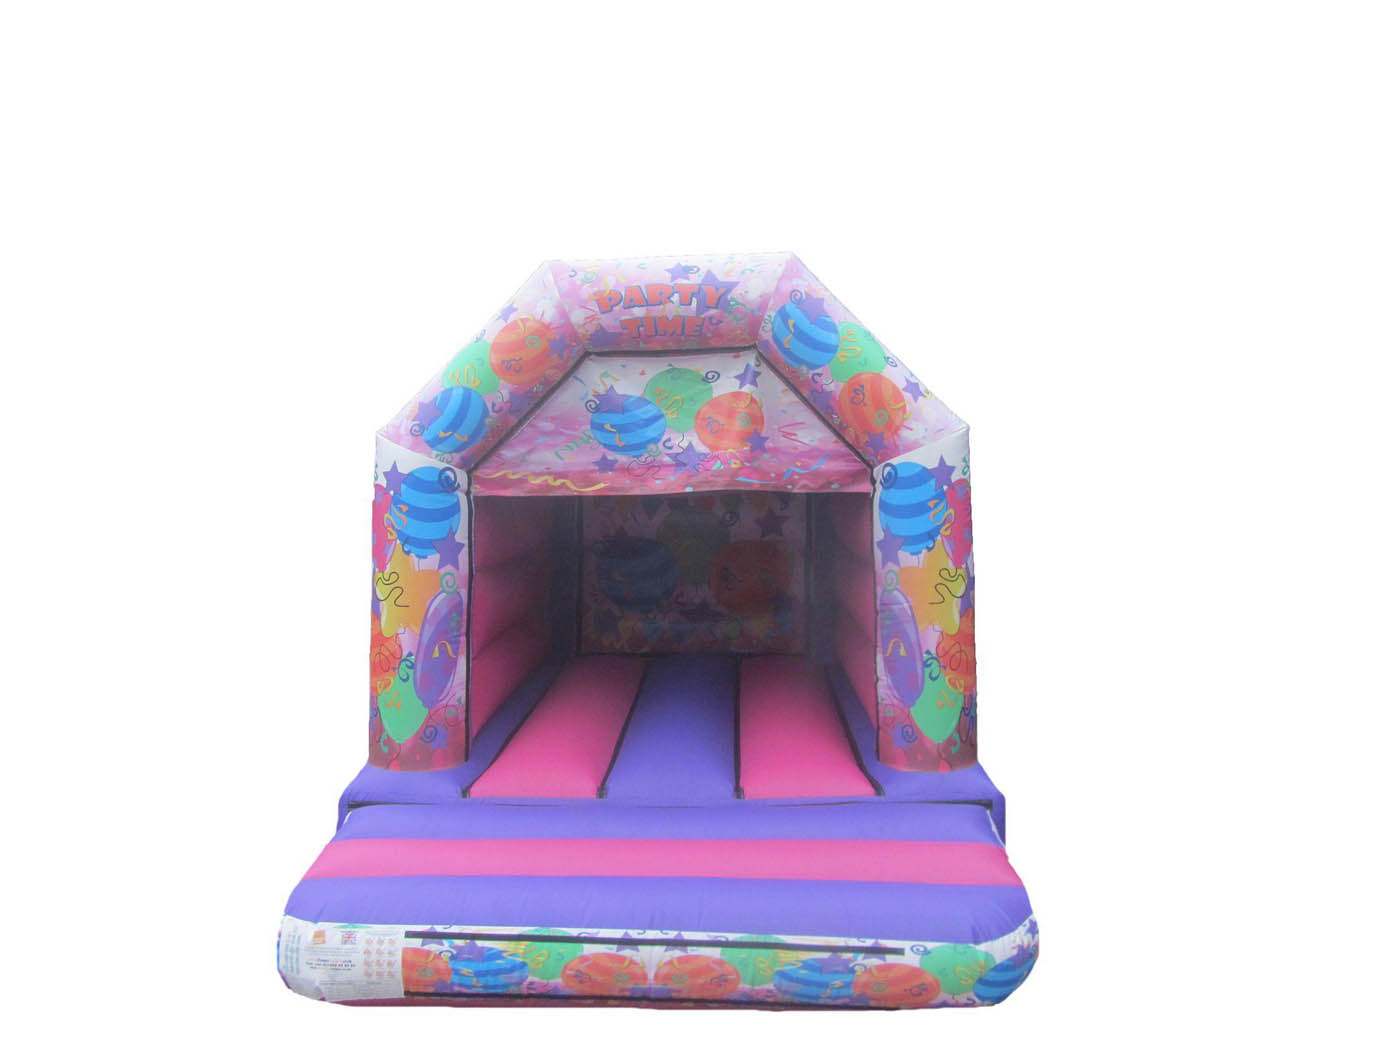 15x11-pink-party-printed-childrens-velcro-bouncy-castle-compressor